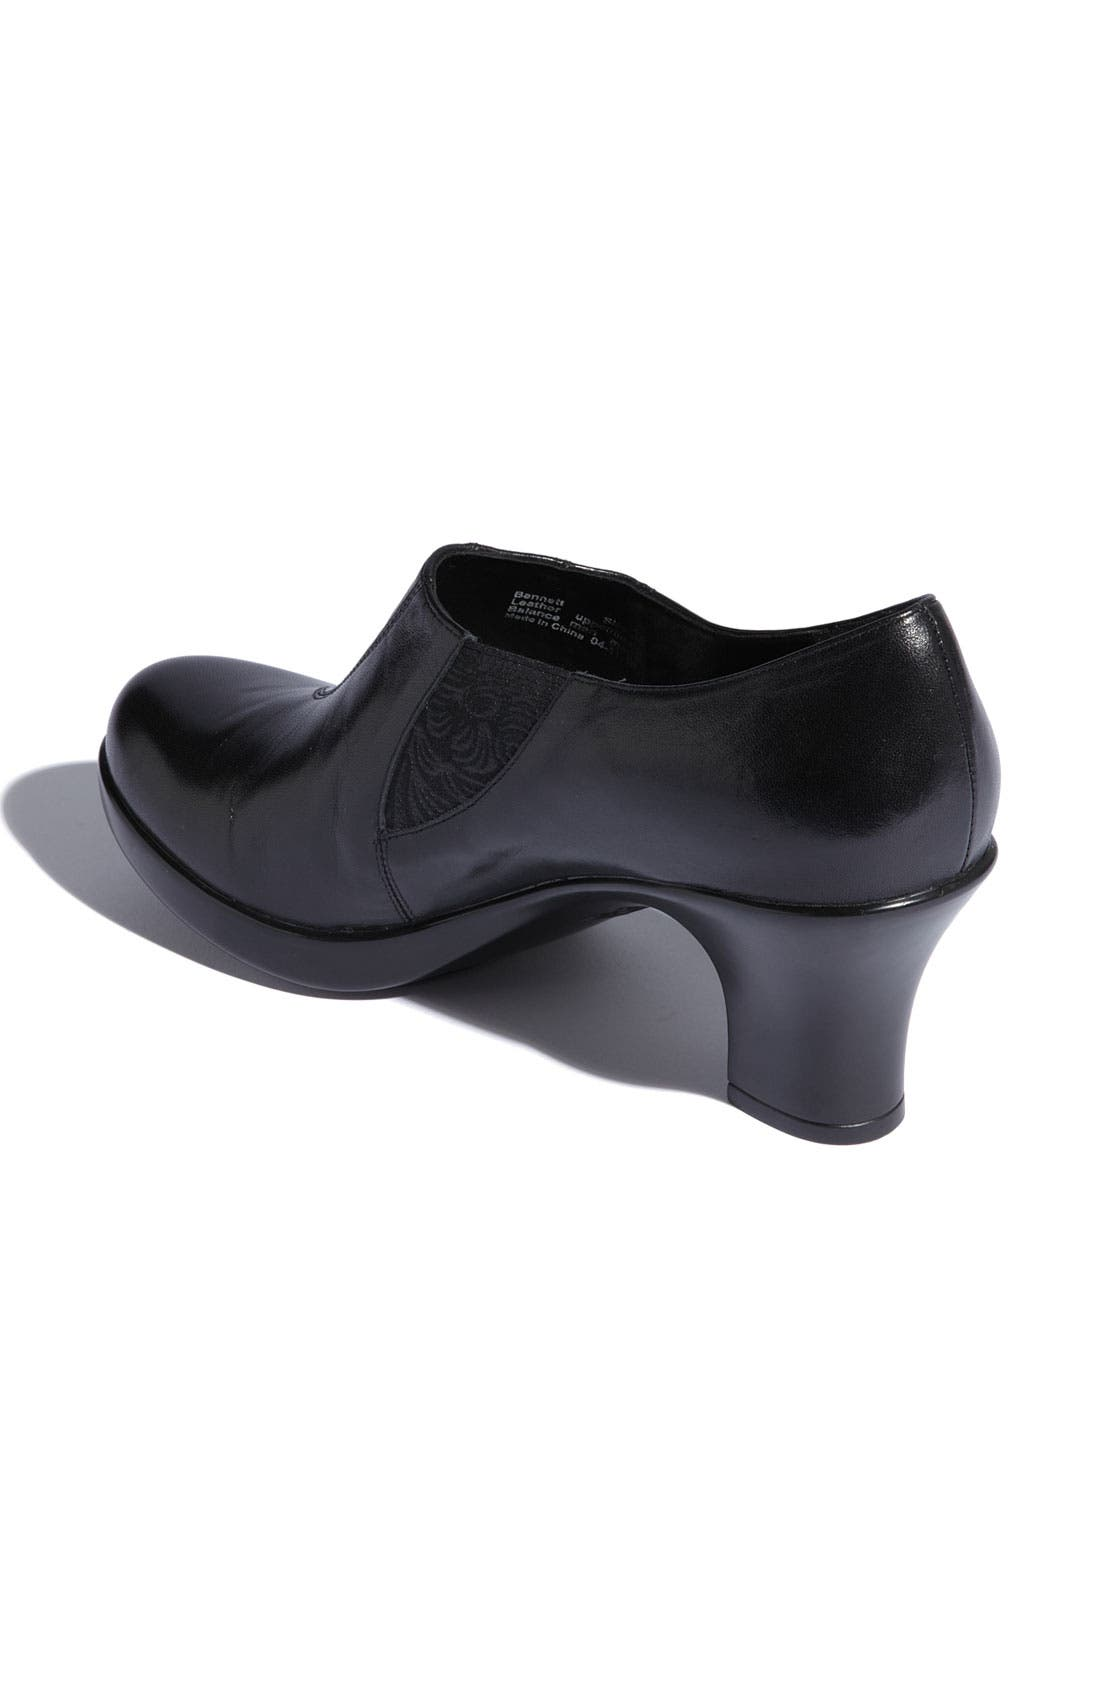 Alternate Image 2  - Dansko 'Bennett' Pump